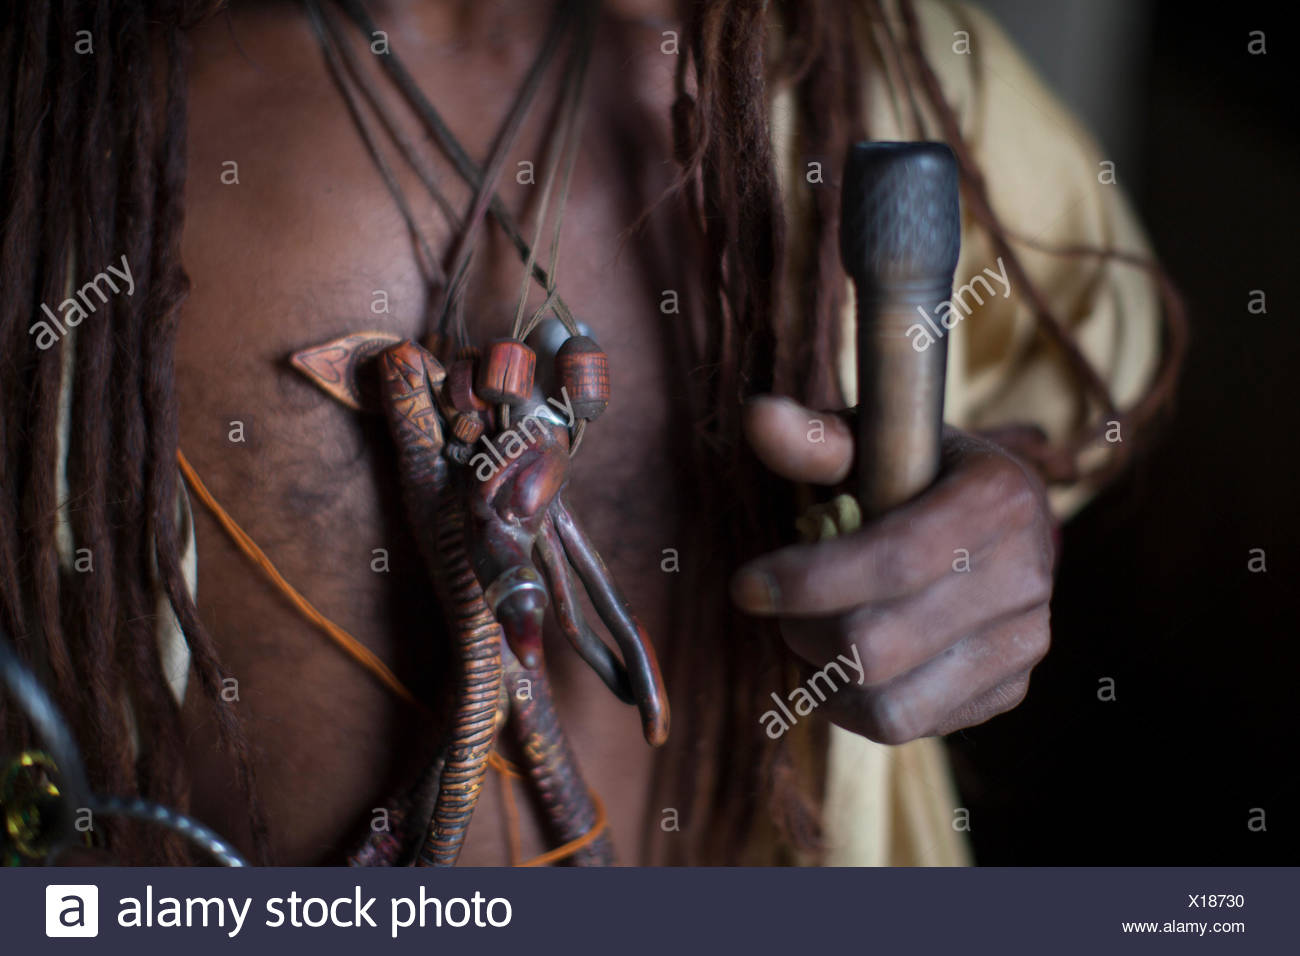 The ornamentation and pipe of a Hindu Sadhu is held in Kathmandu's Pashupatinath Temple in Nepal. Stock Photo